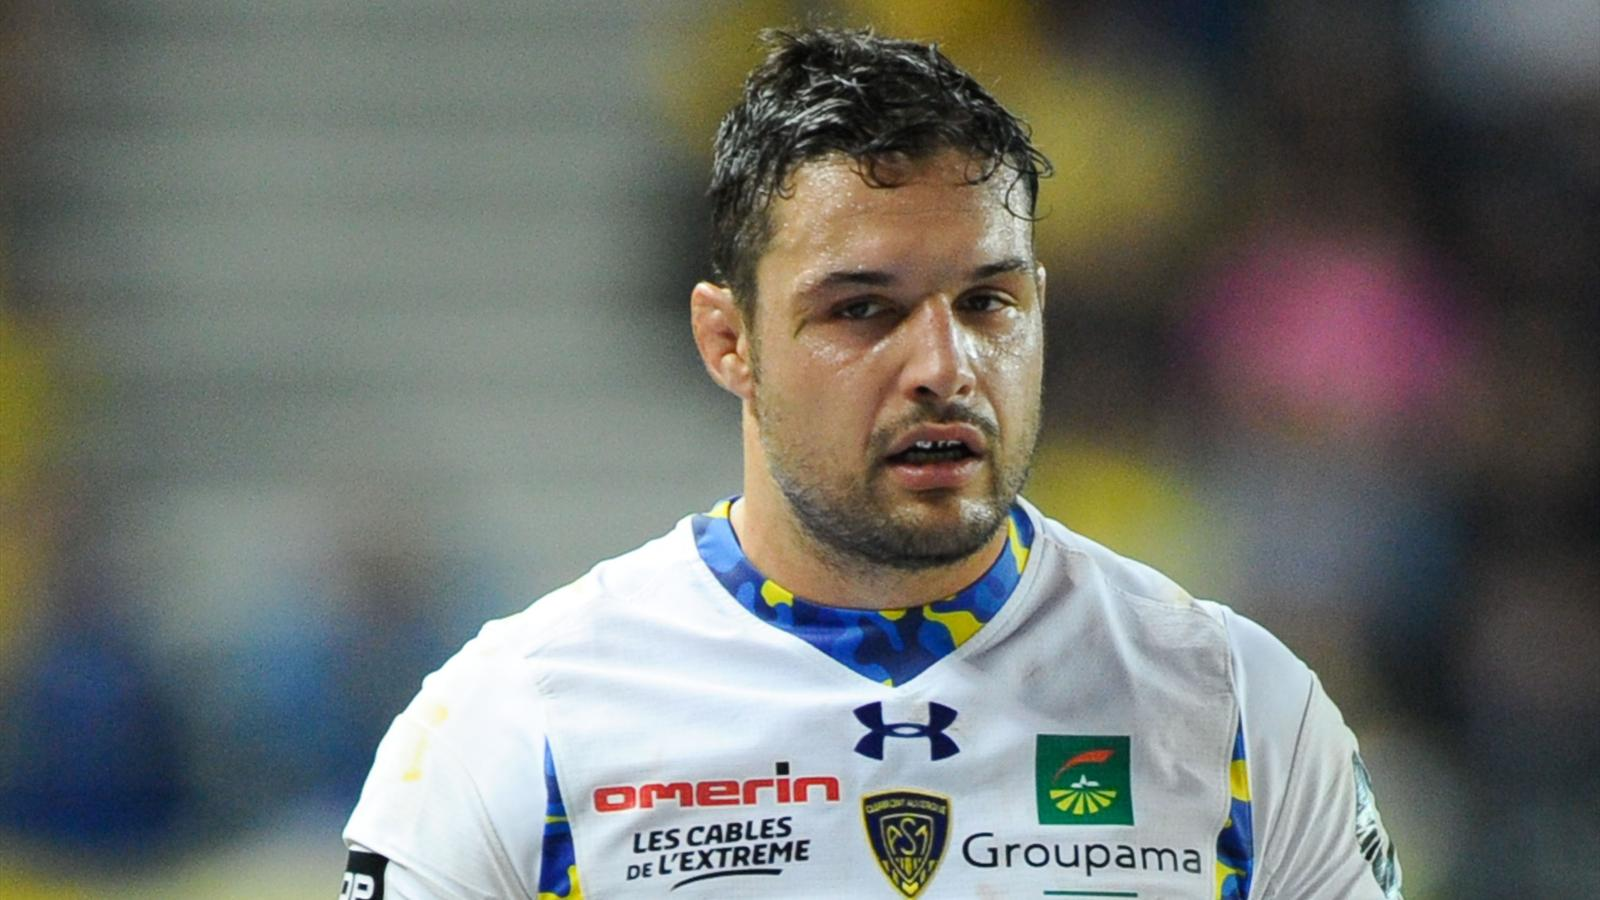 Damien Chouly (Clermont)